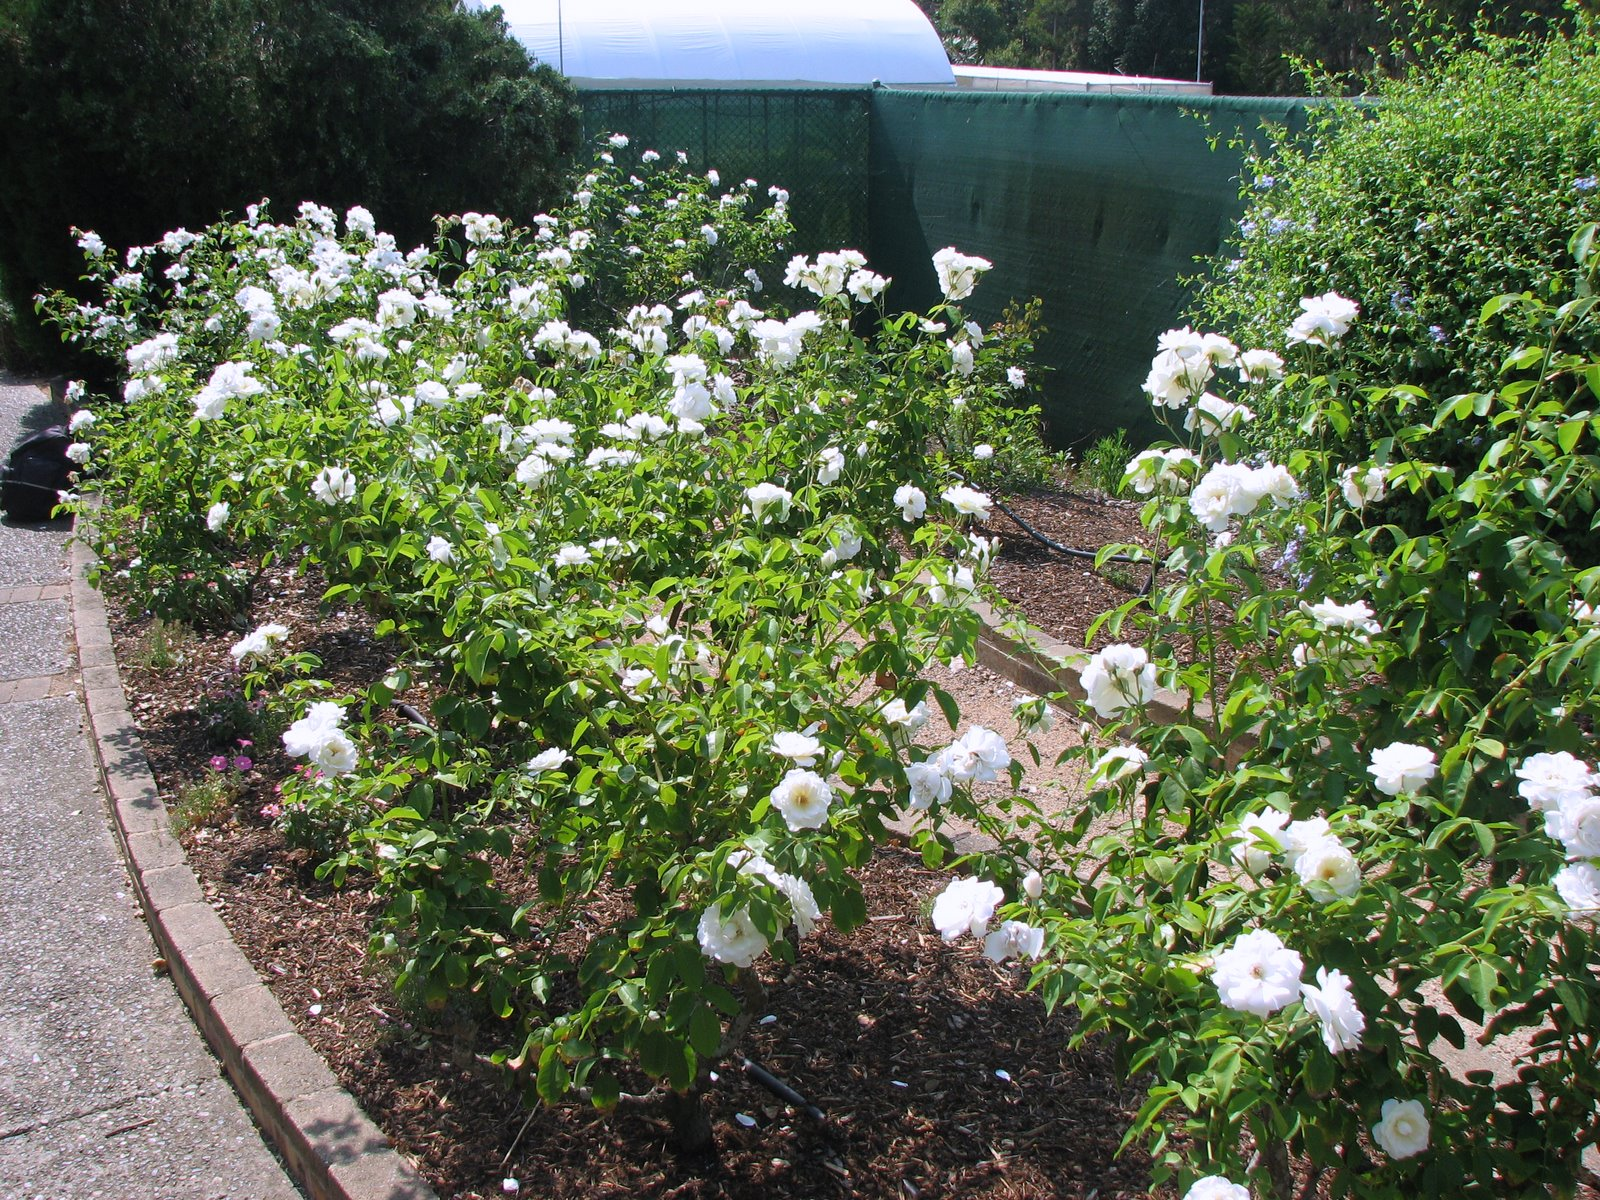 Plant Photography: White Rose Garden